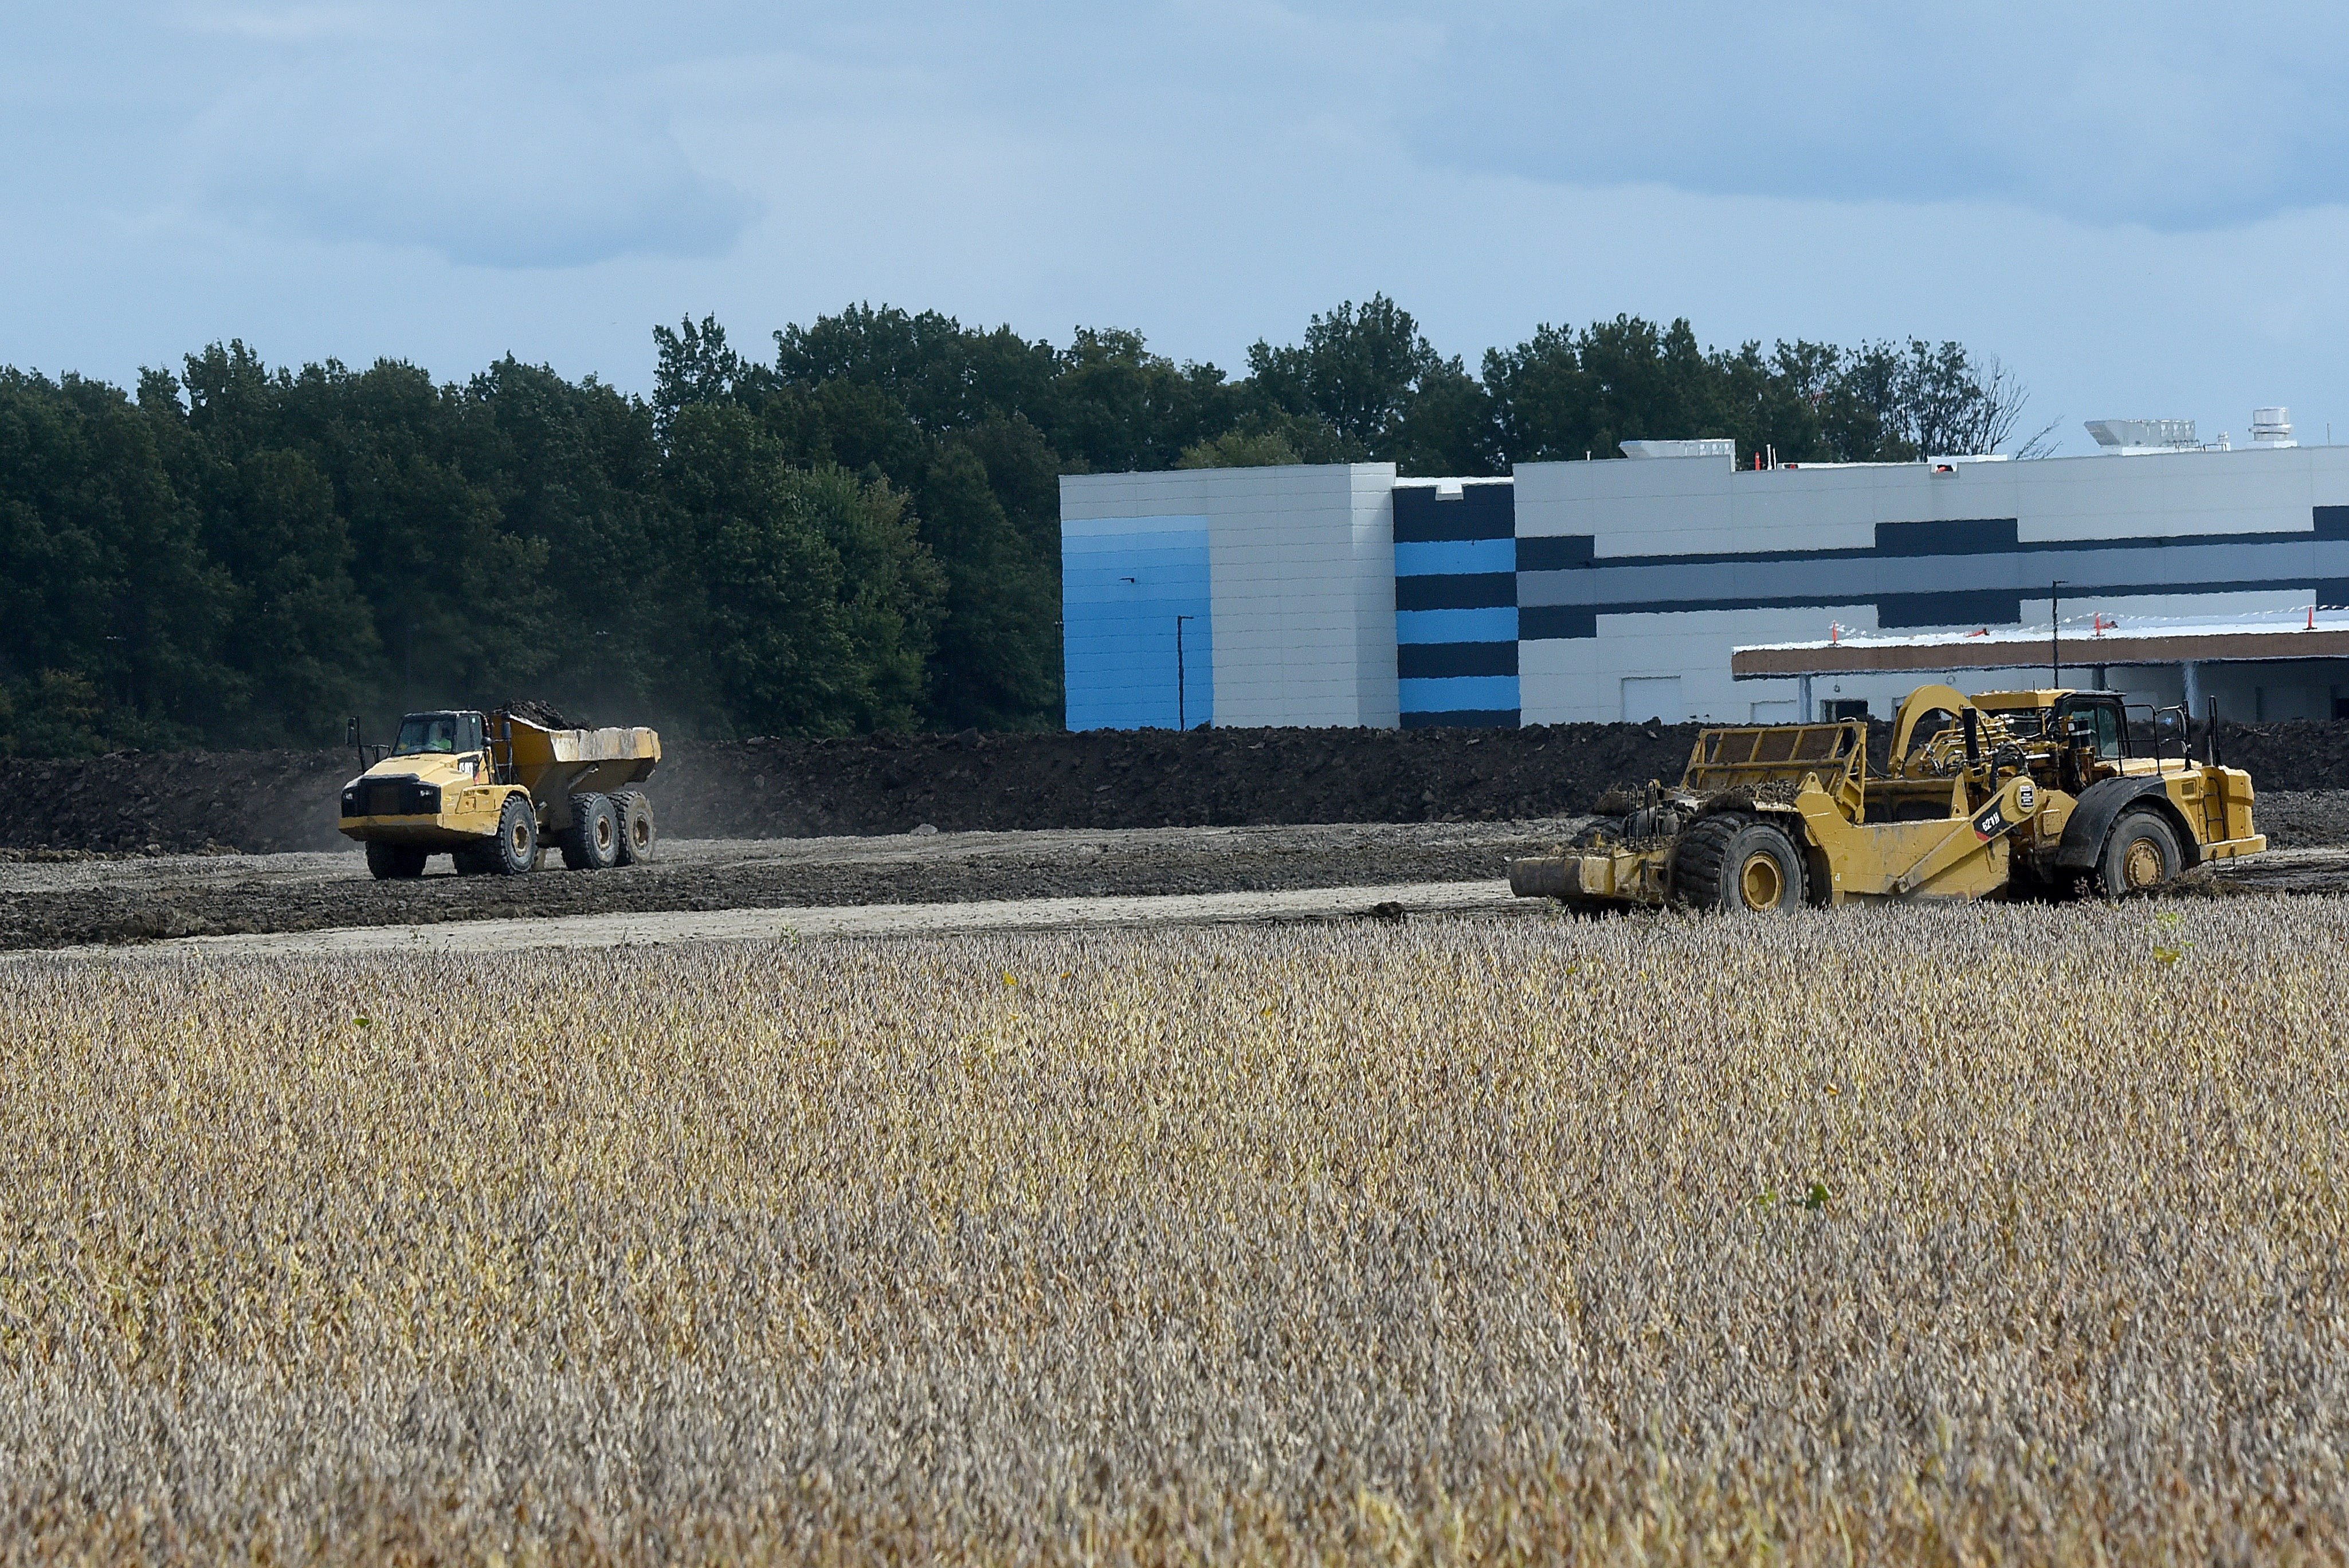 Heavy construction equipment works to lay the groundwork for a huge warehouse along Mink Street in Etna Township, alongside the new Amazon Distribution Center in the background.